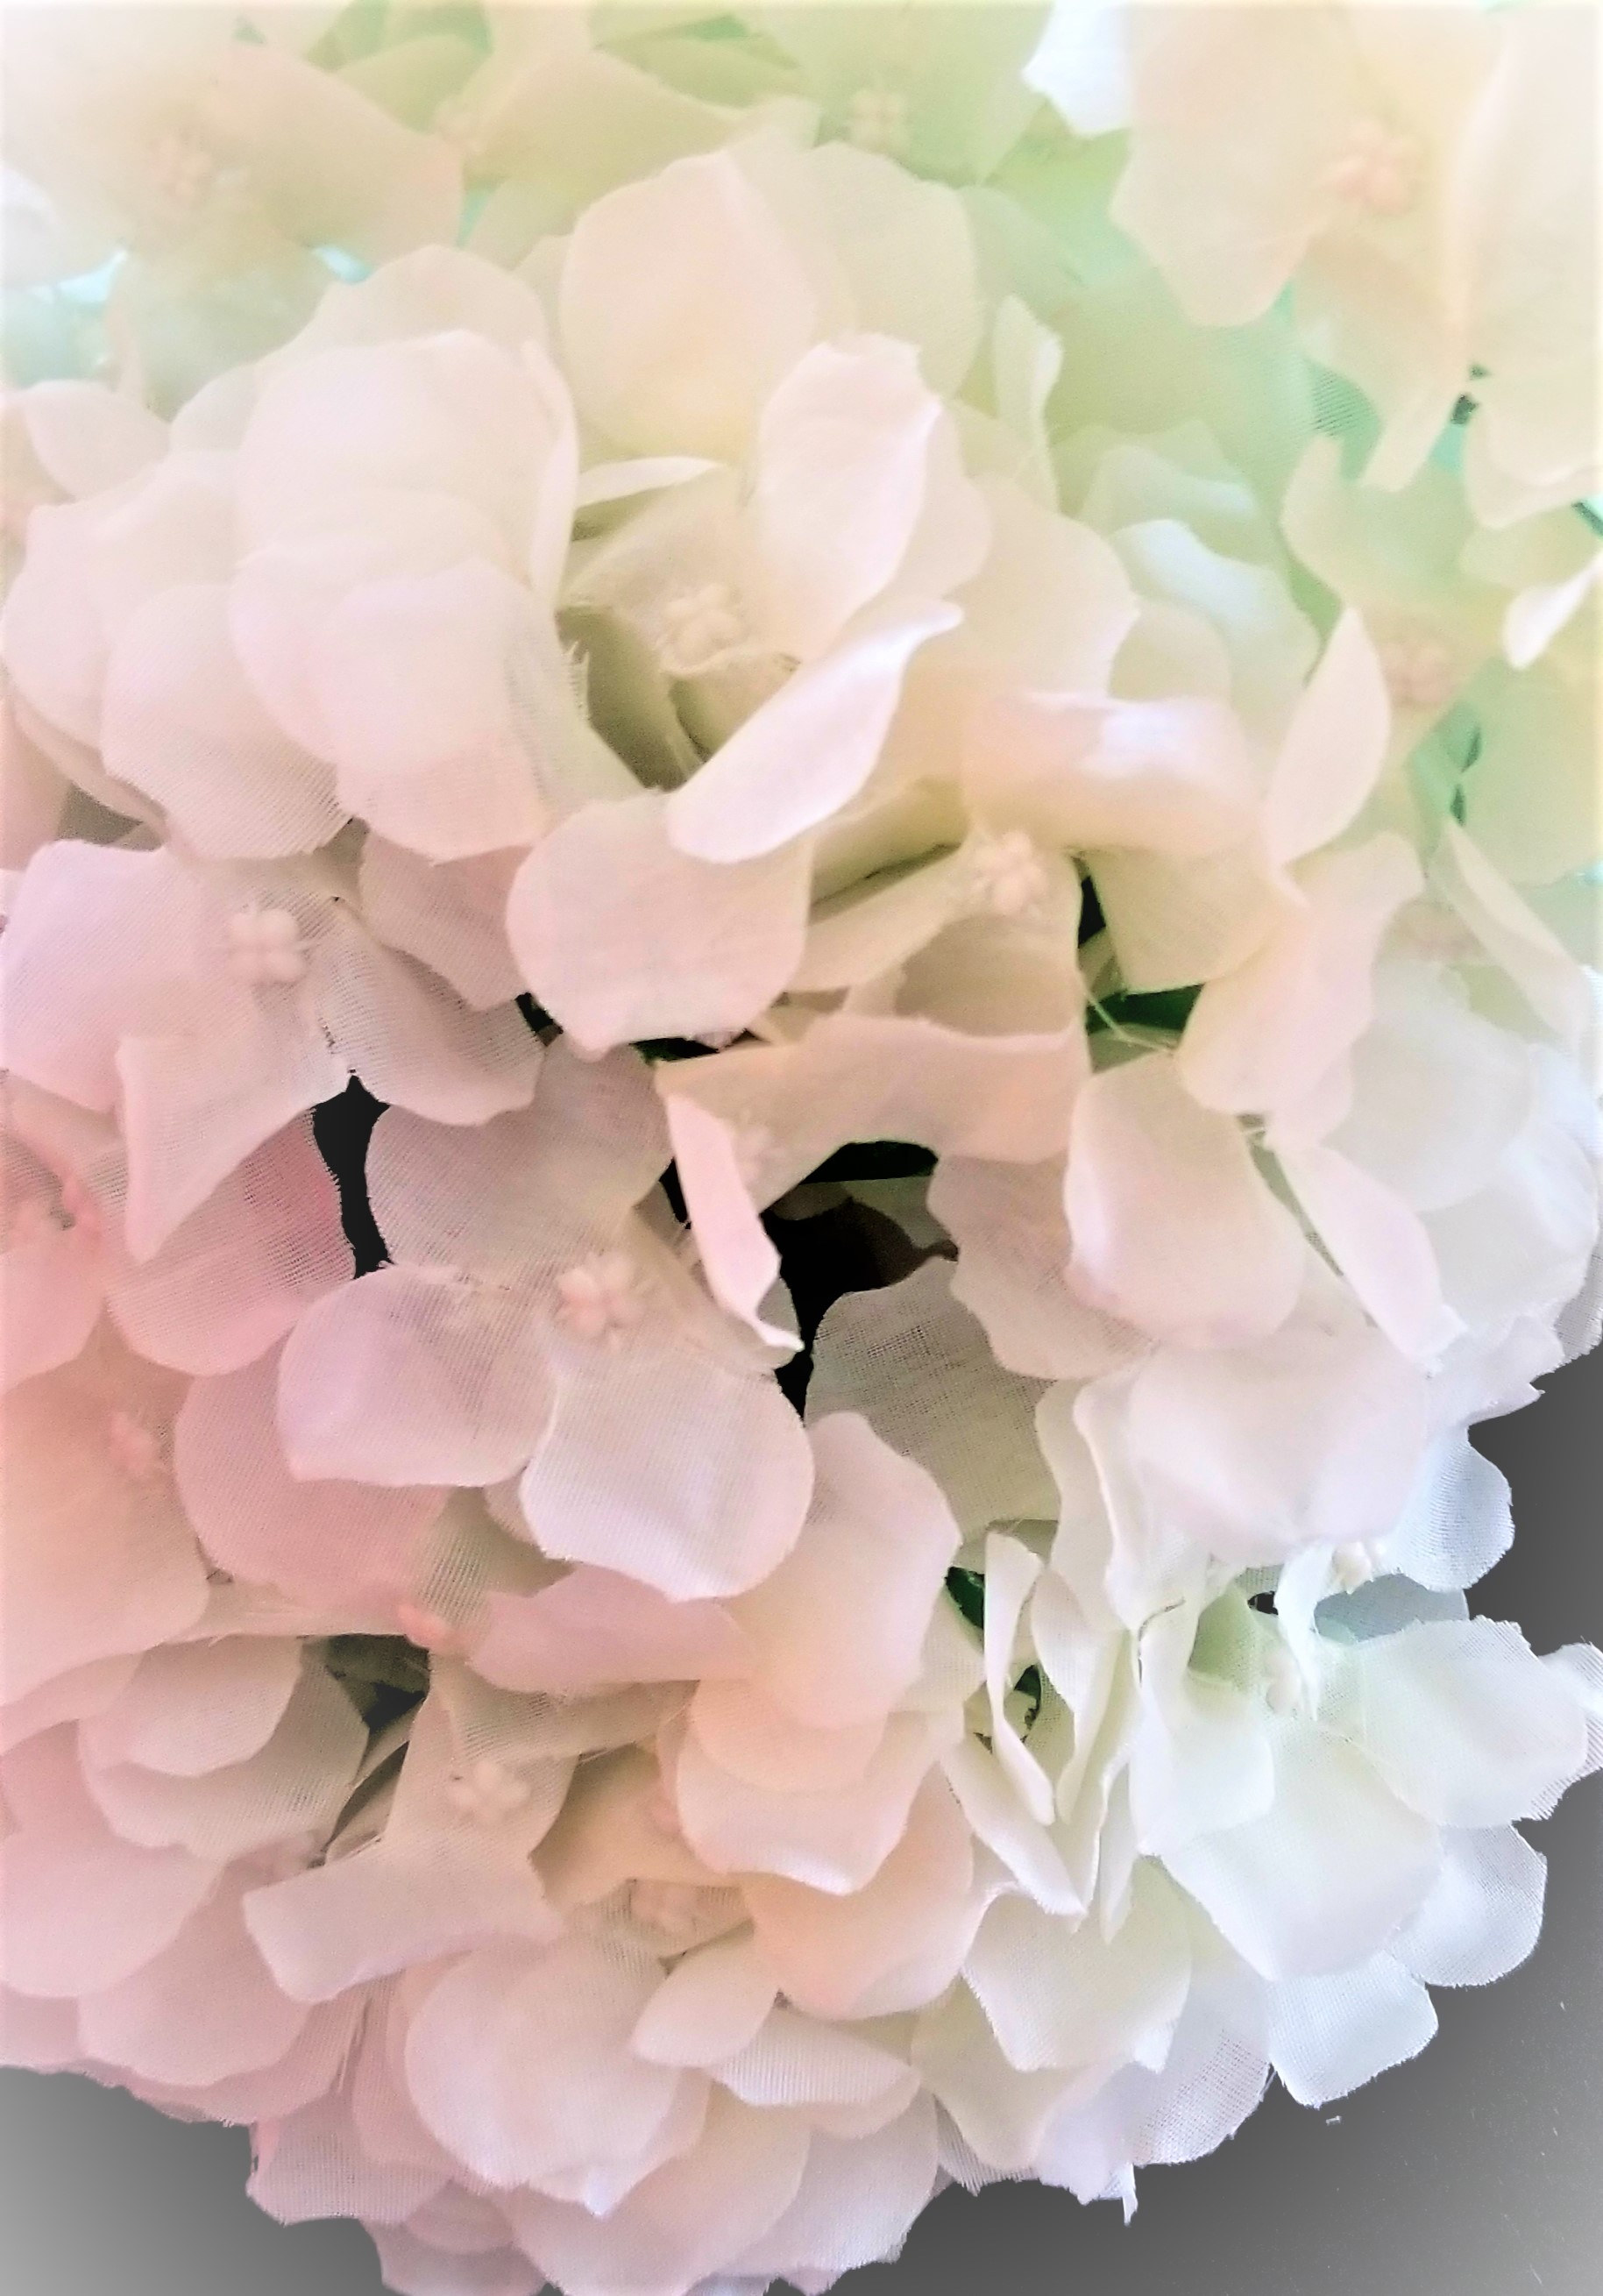 Pretty Artificial Flowers for Crafting